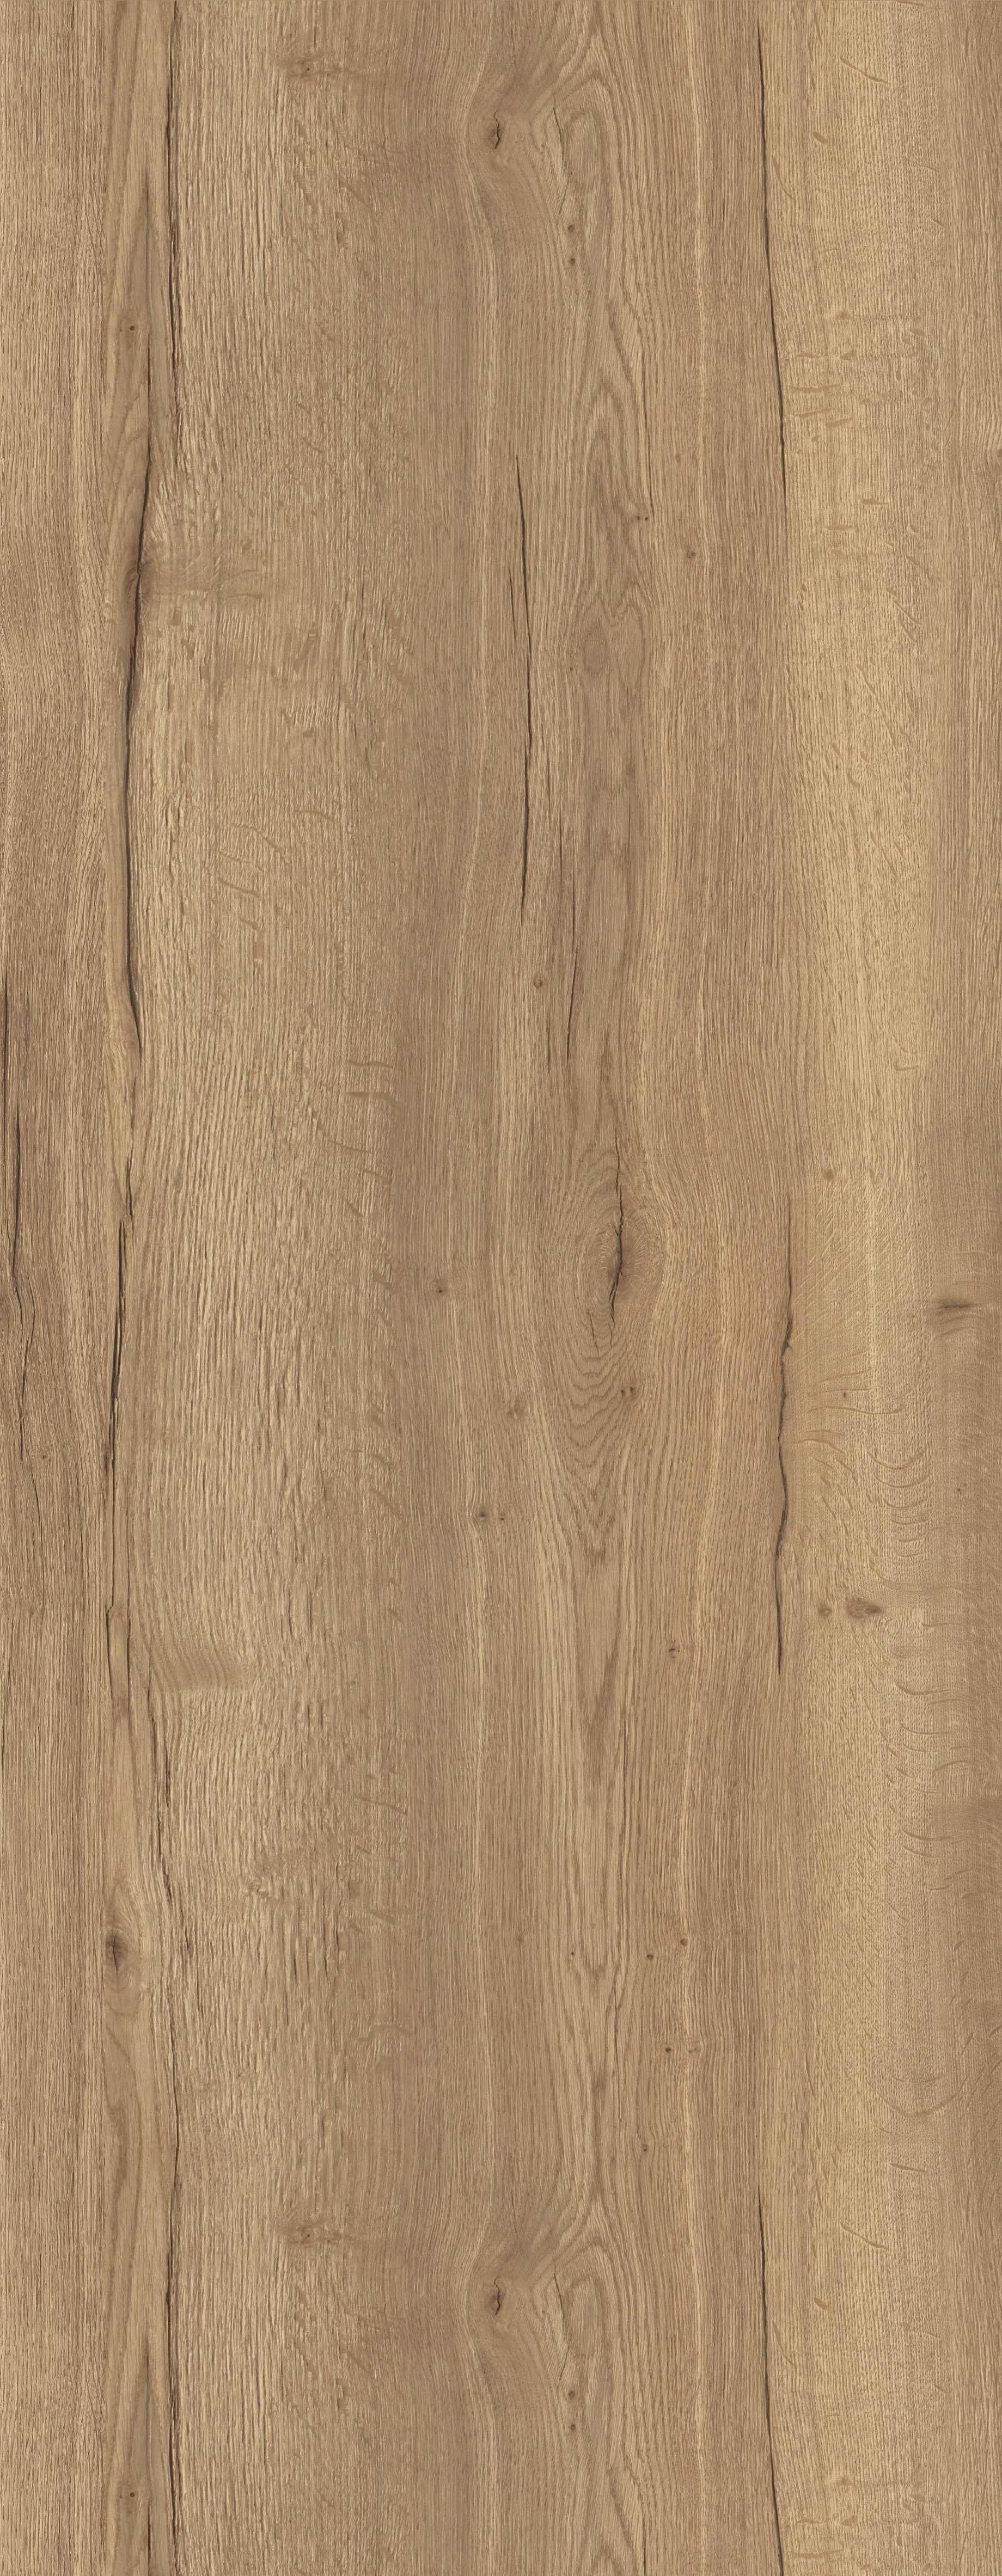 Rubber mats exeter - H1180 St37 Natural Halifax Oak Is A Rustic Style Decor In A Natural Sandy Tone